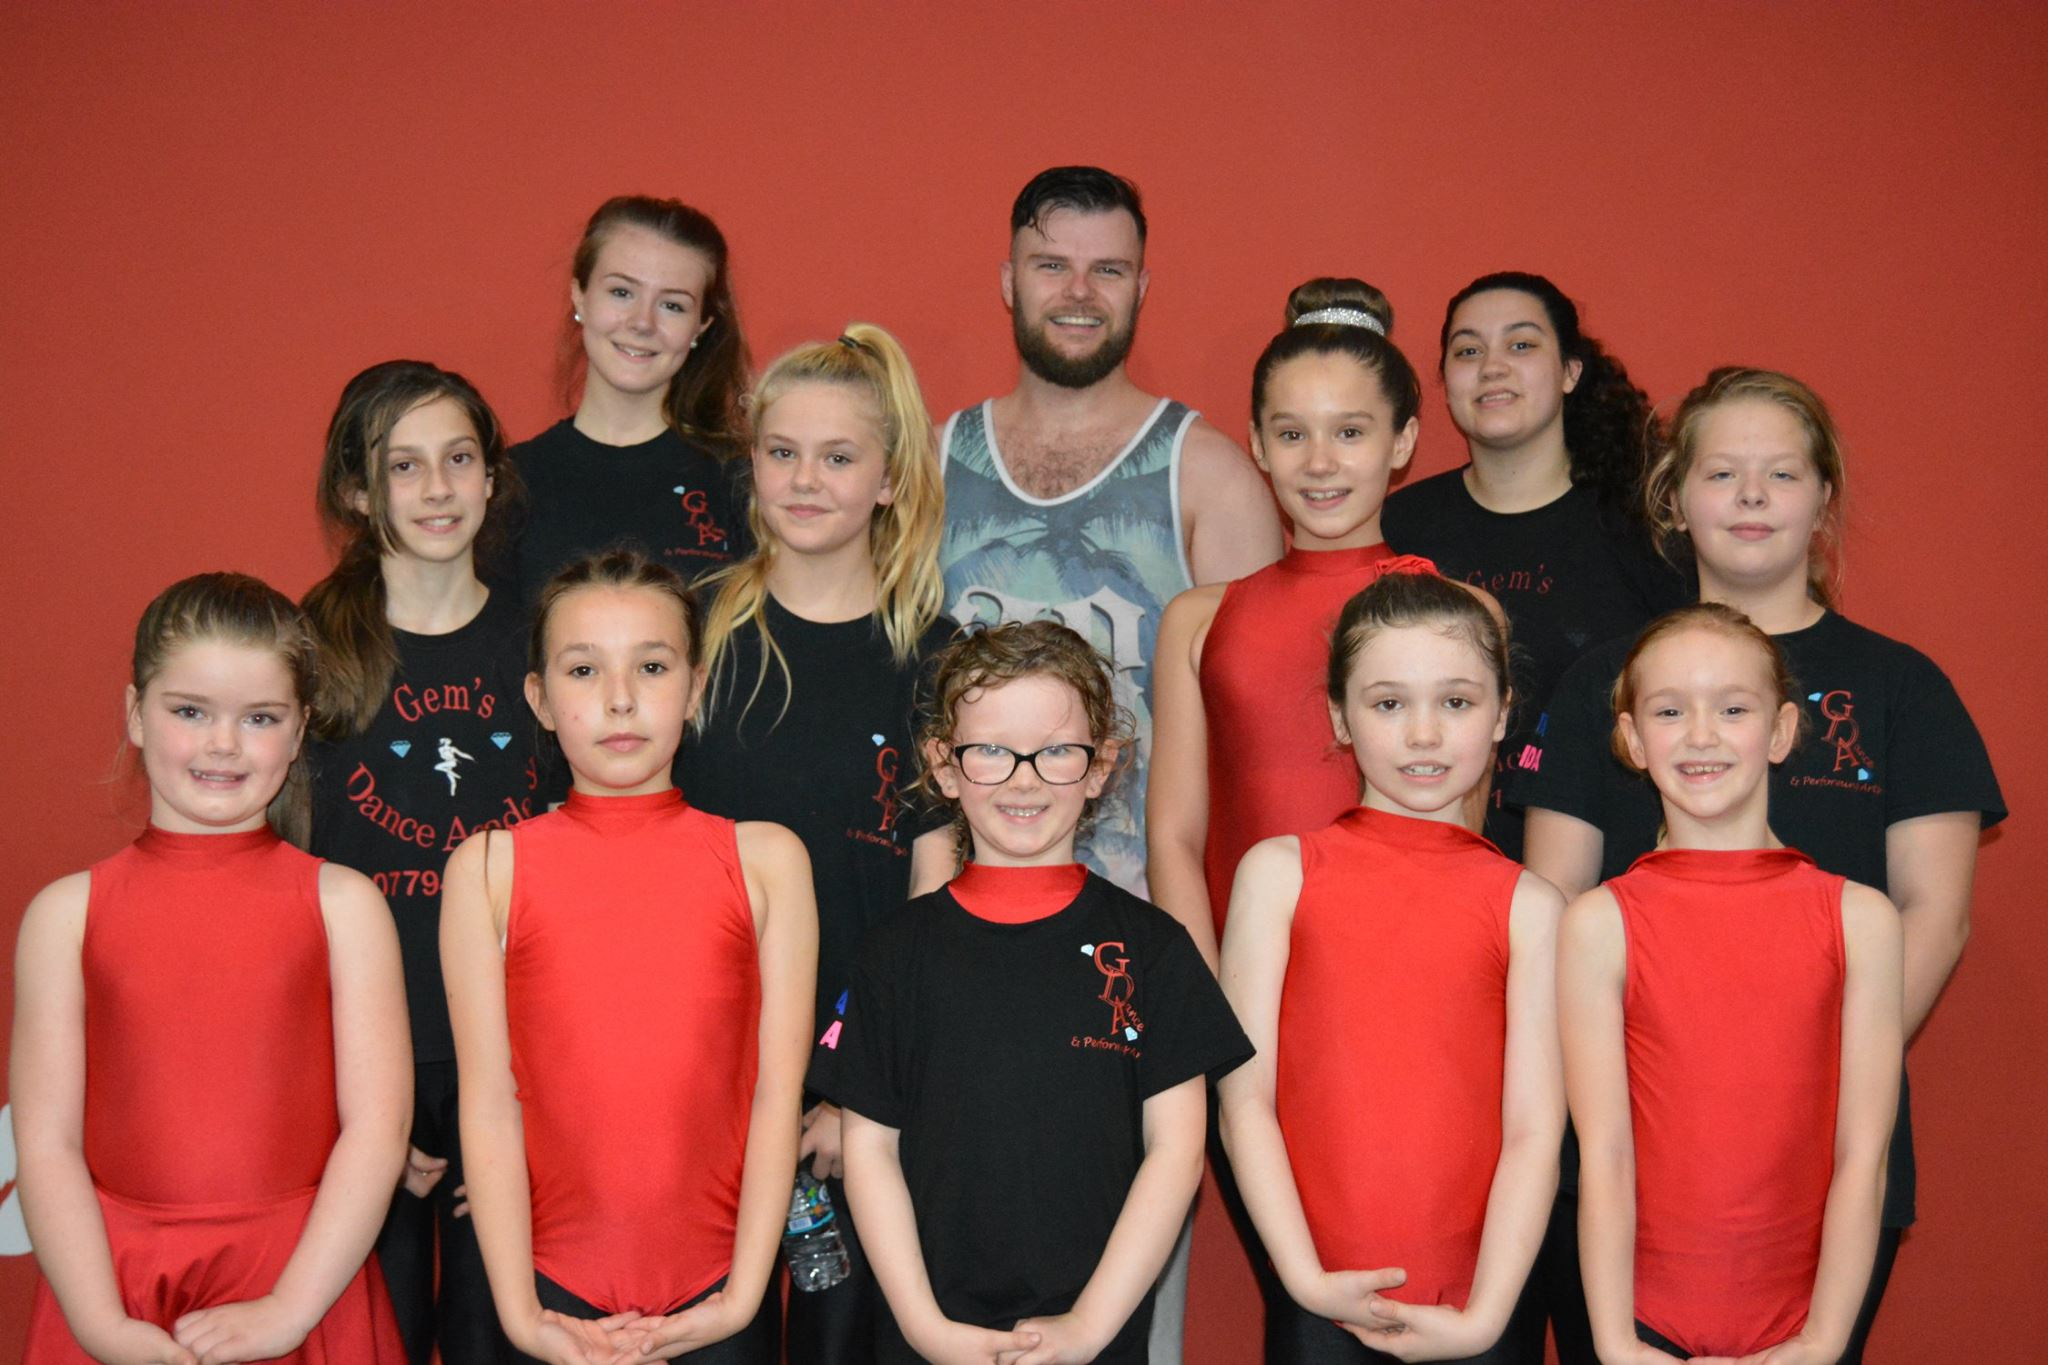 Students from Gem's Dance Academy after workshops in Street and Freestyle with James